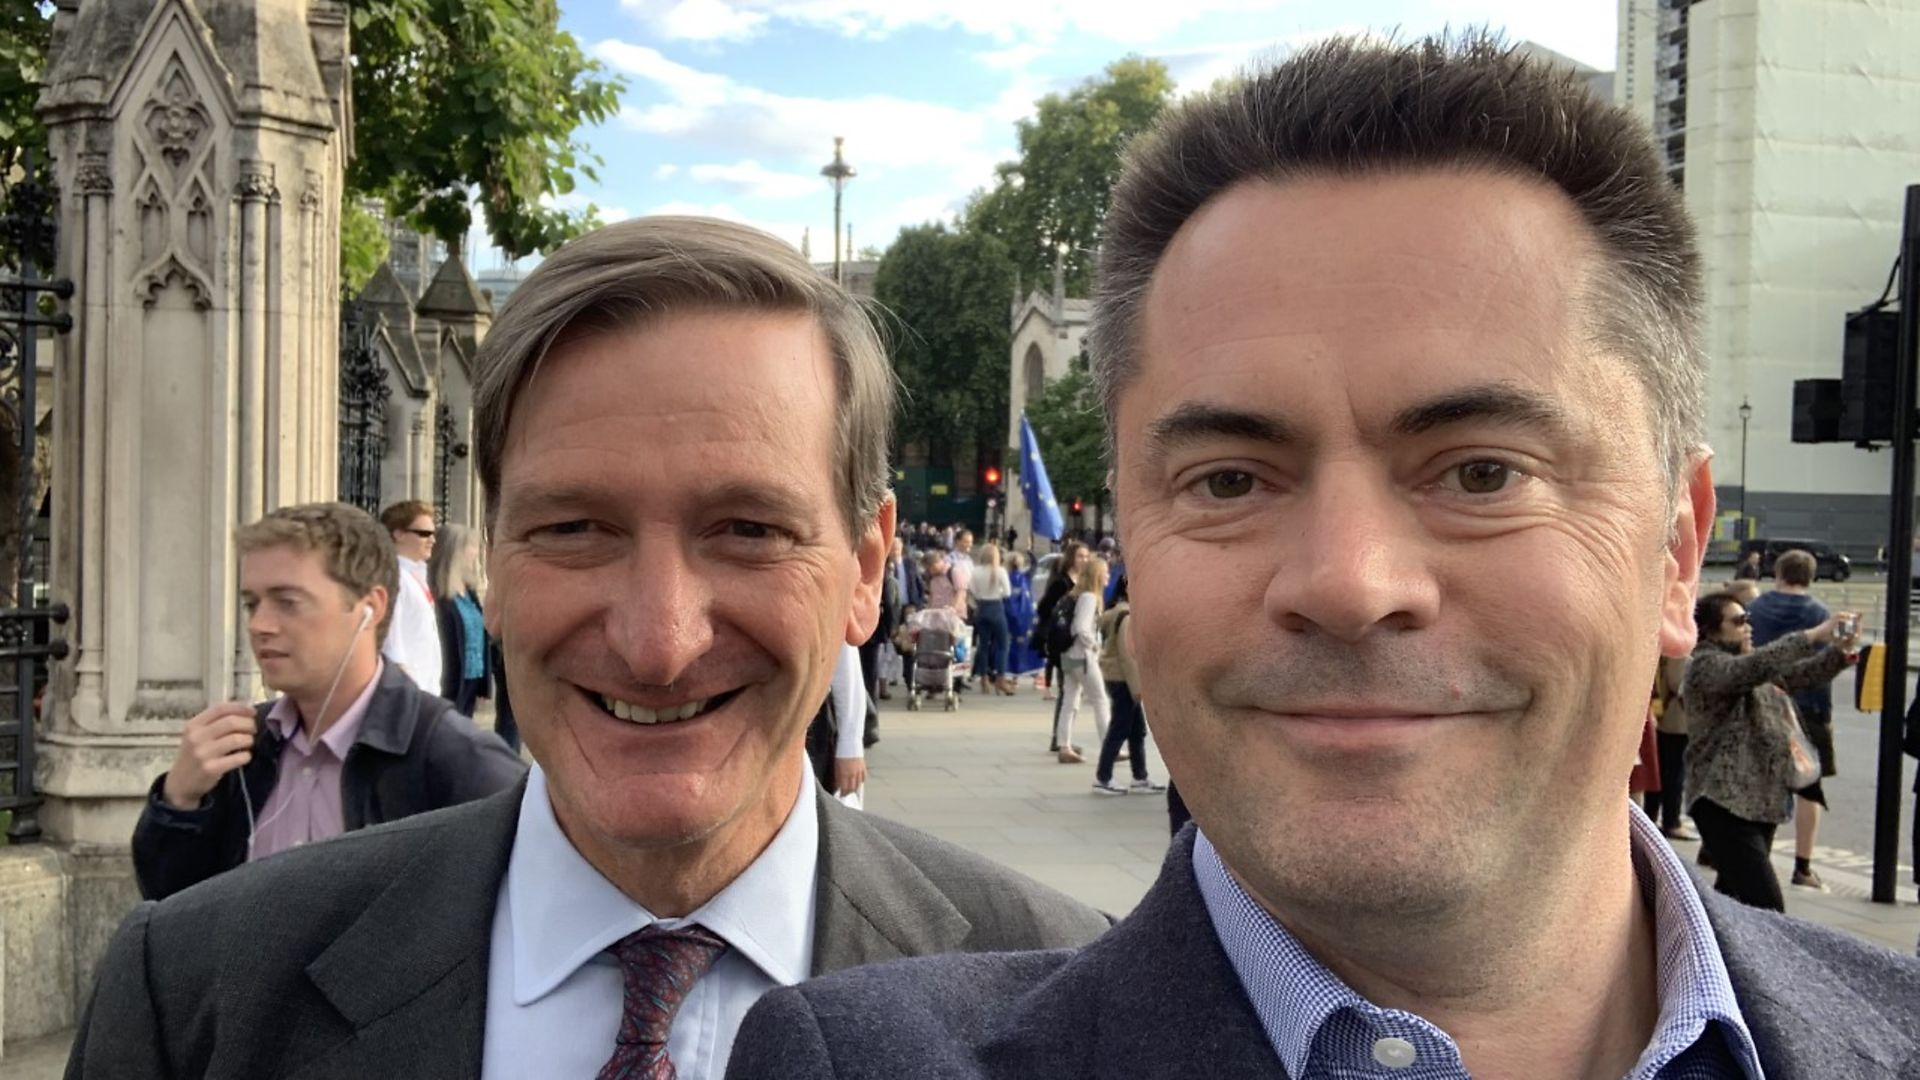 Richard Scott (R) poses for a picture with one of his political idols, former MP Dominic Grieve (L). - Credit: Richard Scott